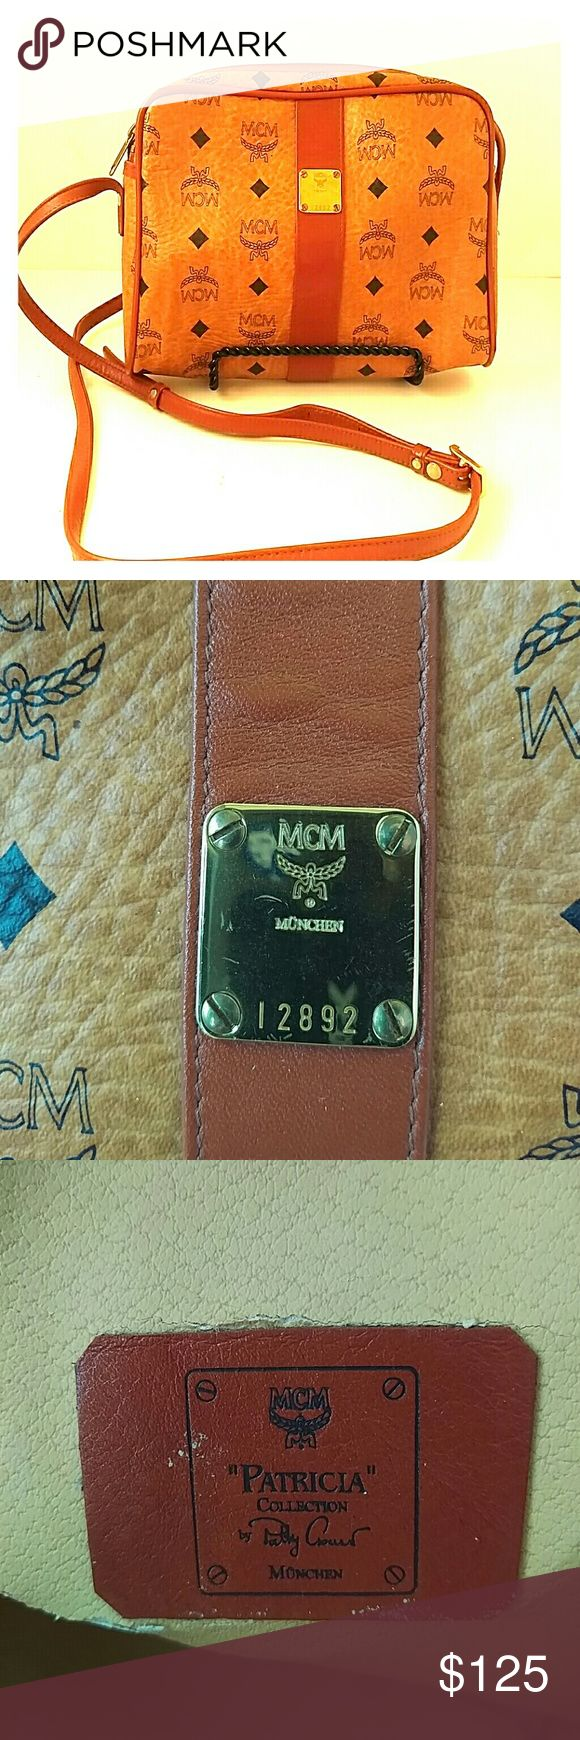 """Color Videos cross-post MCM bag Form meets function, as this MCM vintage model moves as fast as you do. Exterior in excellent vintage condition, minor leather cracking on interior. A wonderful addition to your fall or winter wardrobe. Classic MCM bag. Traditional tan and black pattern. All zippers and findings in excellent condition. Upgrade your look with this 8""""x 9"""" x 2.5"""" treasure. MCM Bags Crossbody Bags"""